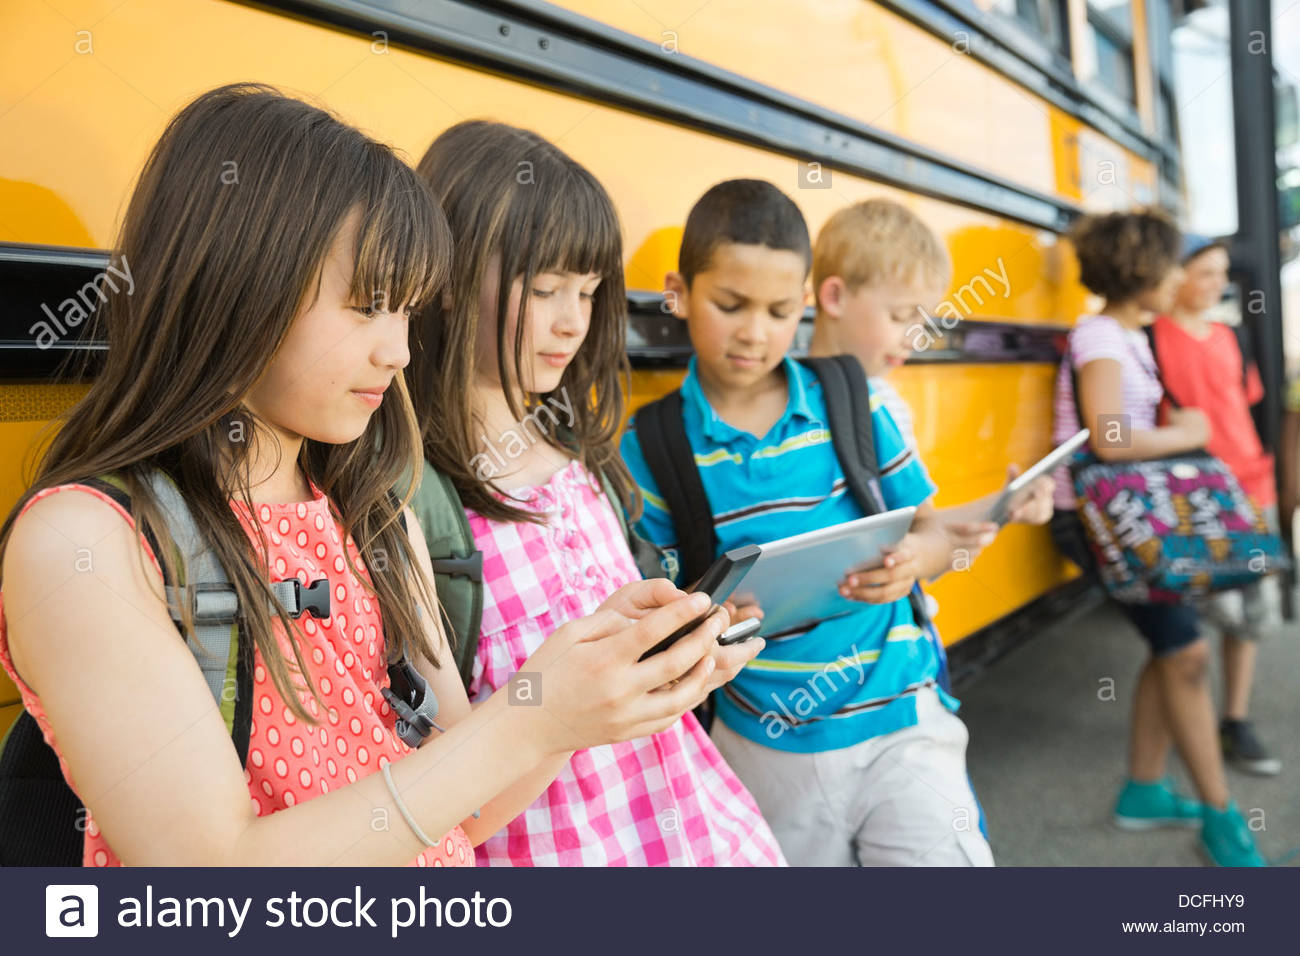 Schoolchildren using smart devices while waiting - Stock Image